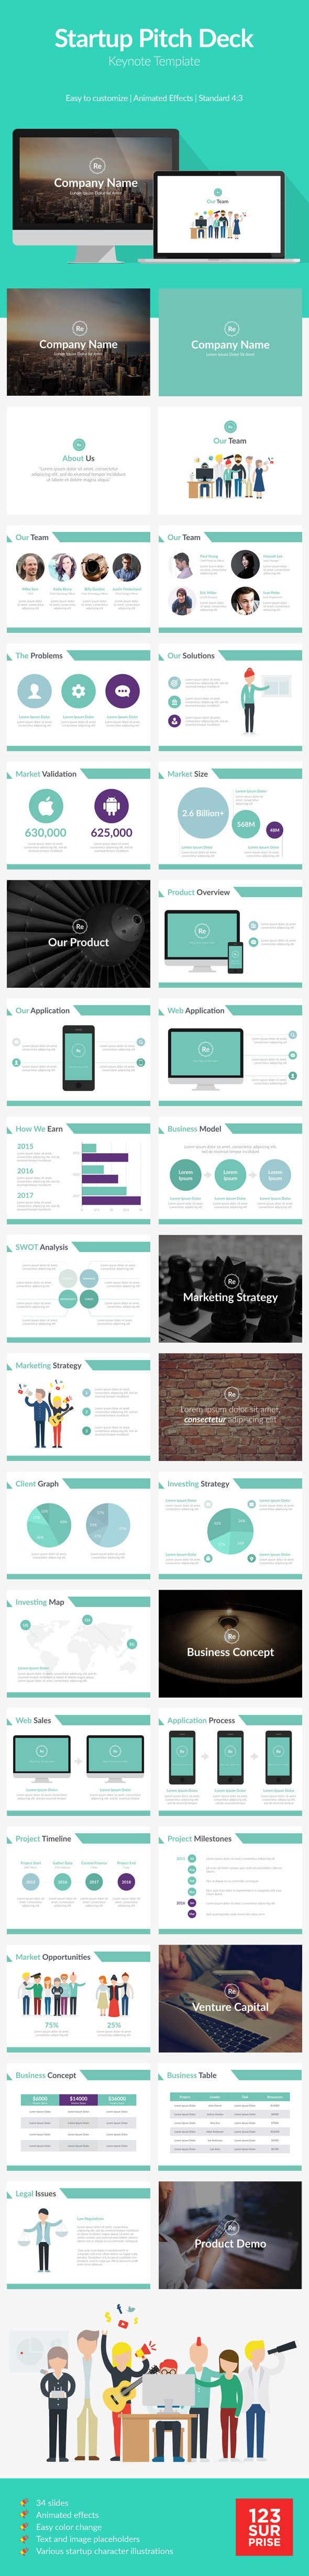 Startup Pitch Deck Template #design #slides Download: http://graphicriver.net/item/startup-pitch-deck-template/12738102?ref=ksioks